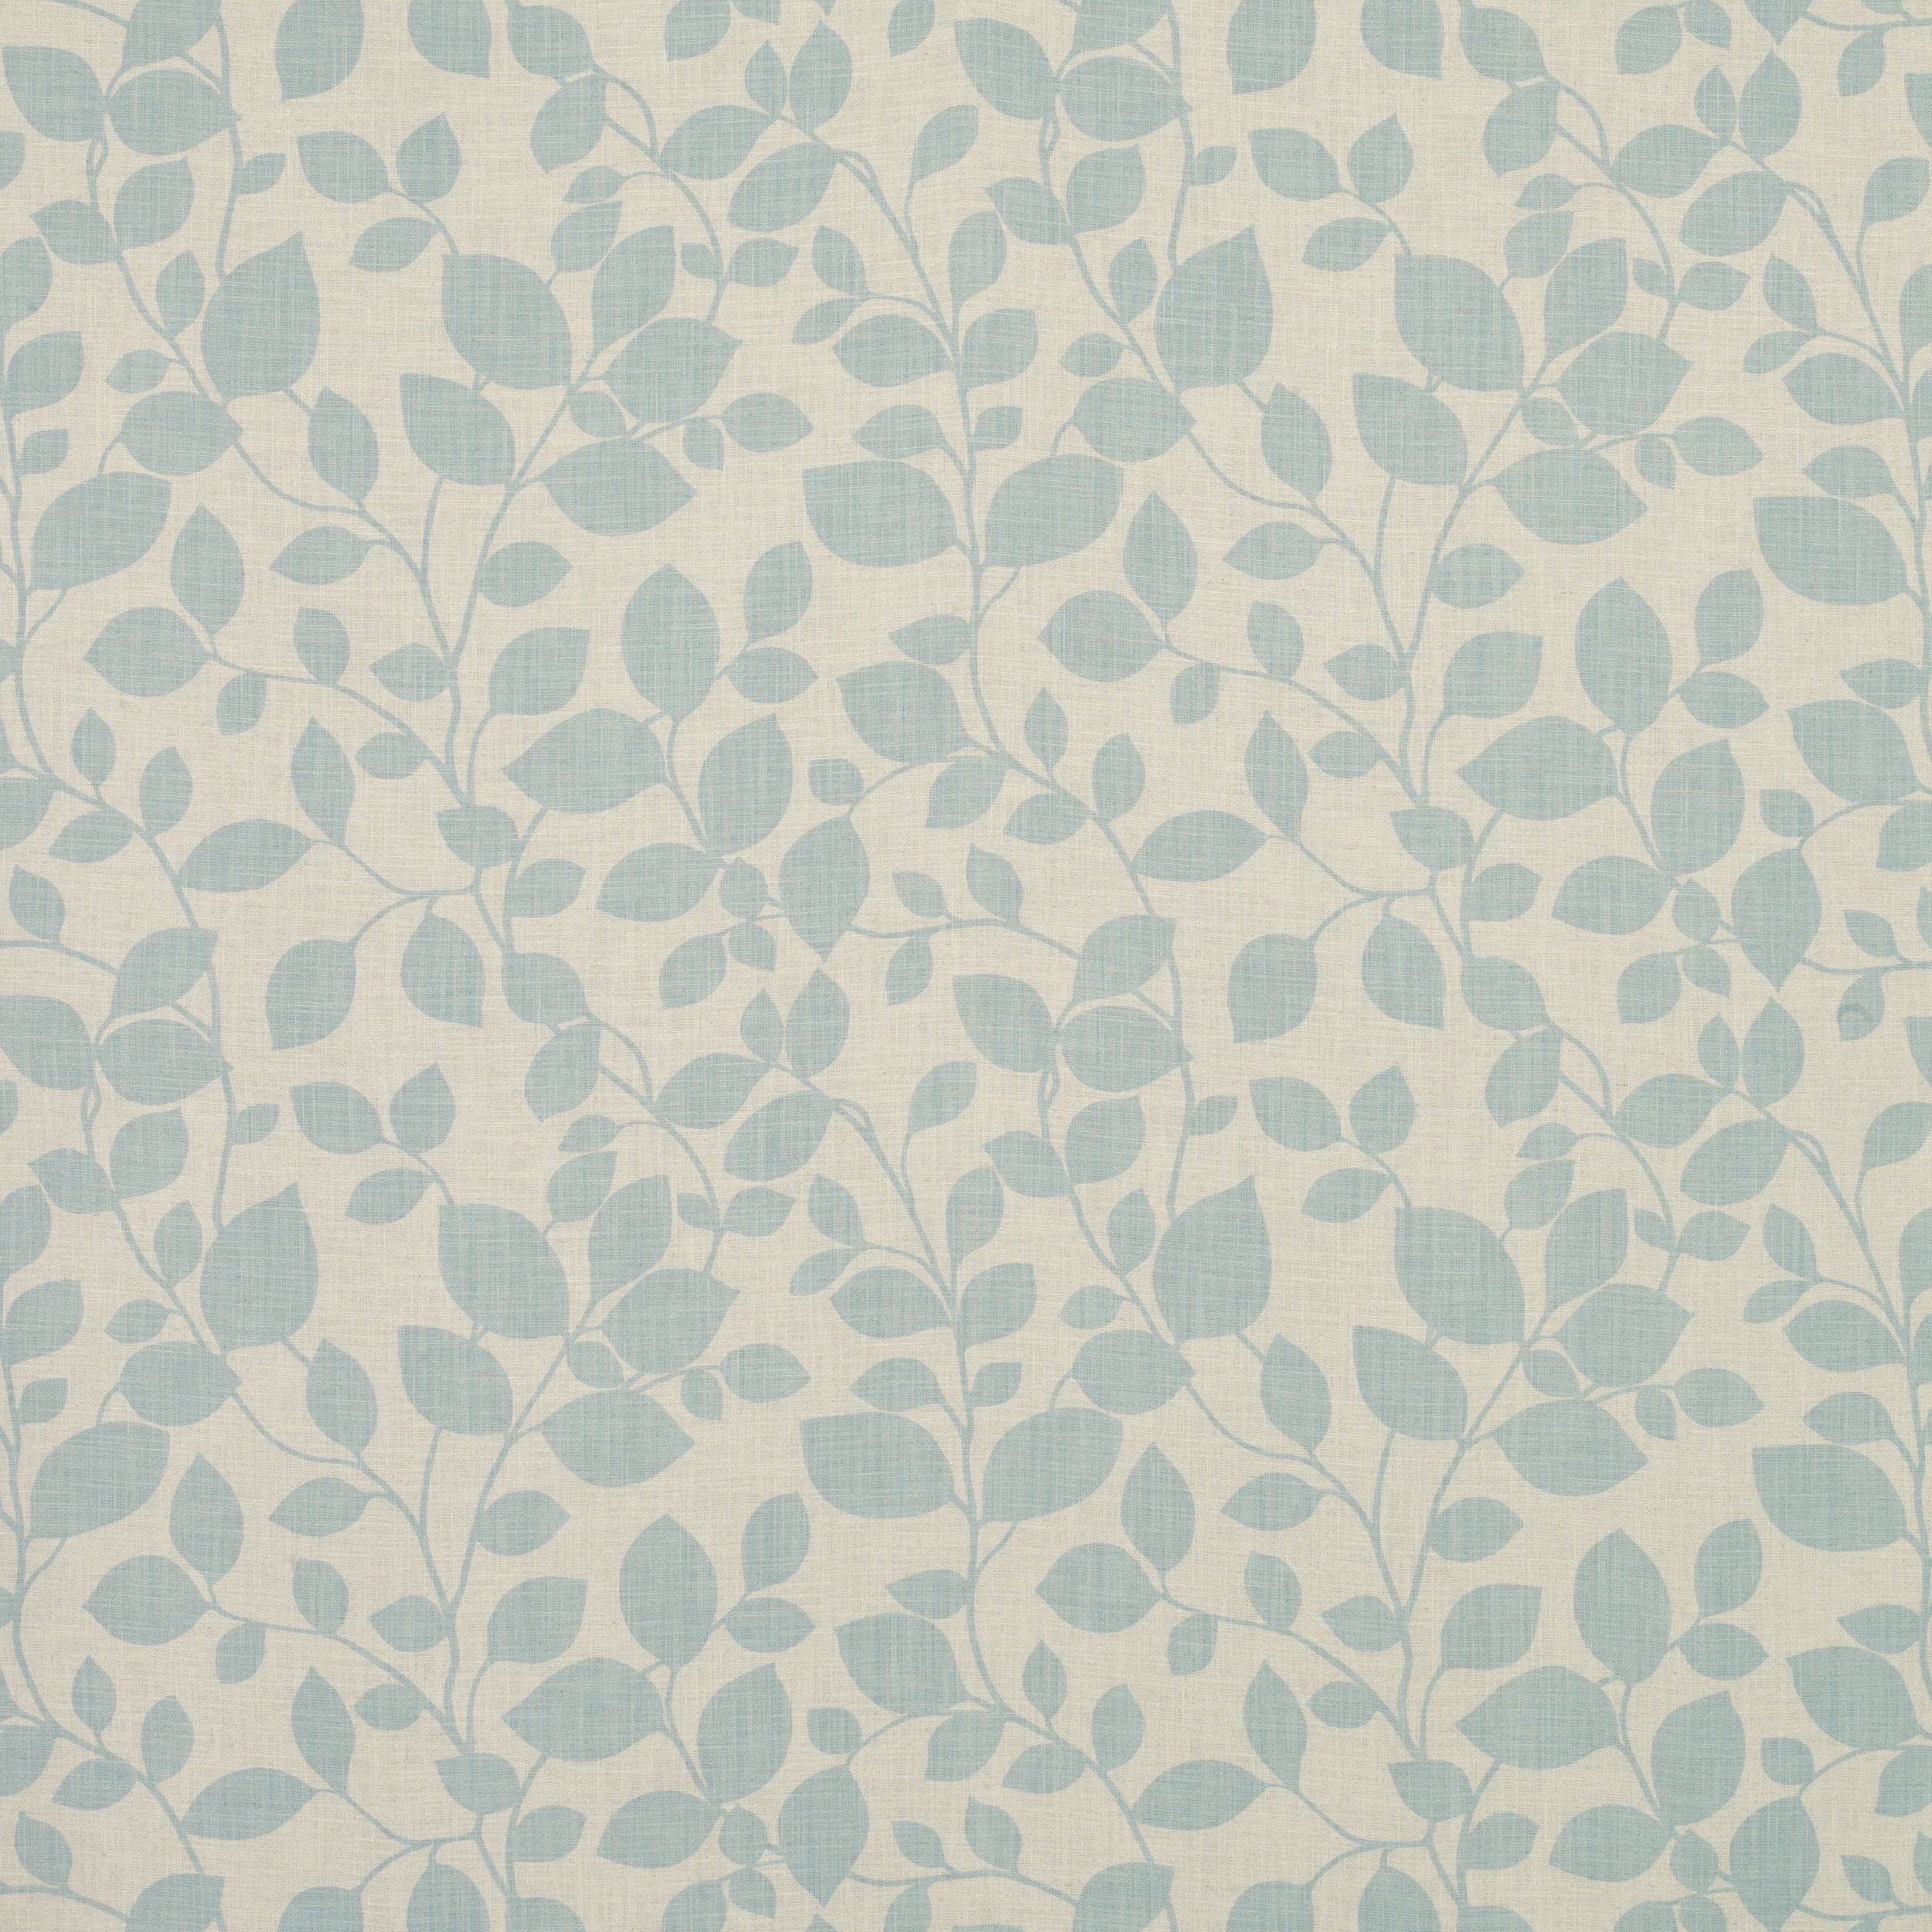 Laura Ashley Chesil Duck Egg Curtain Fabric £14.40 Per Metre